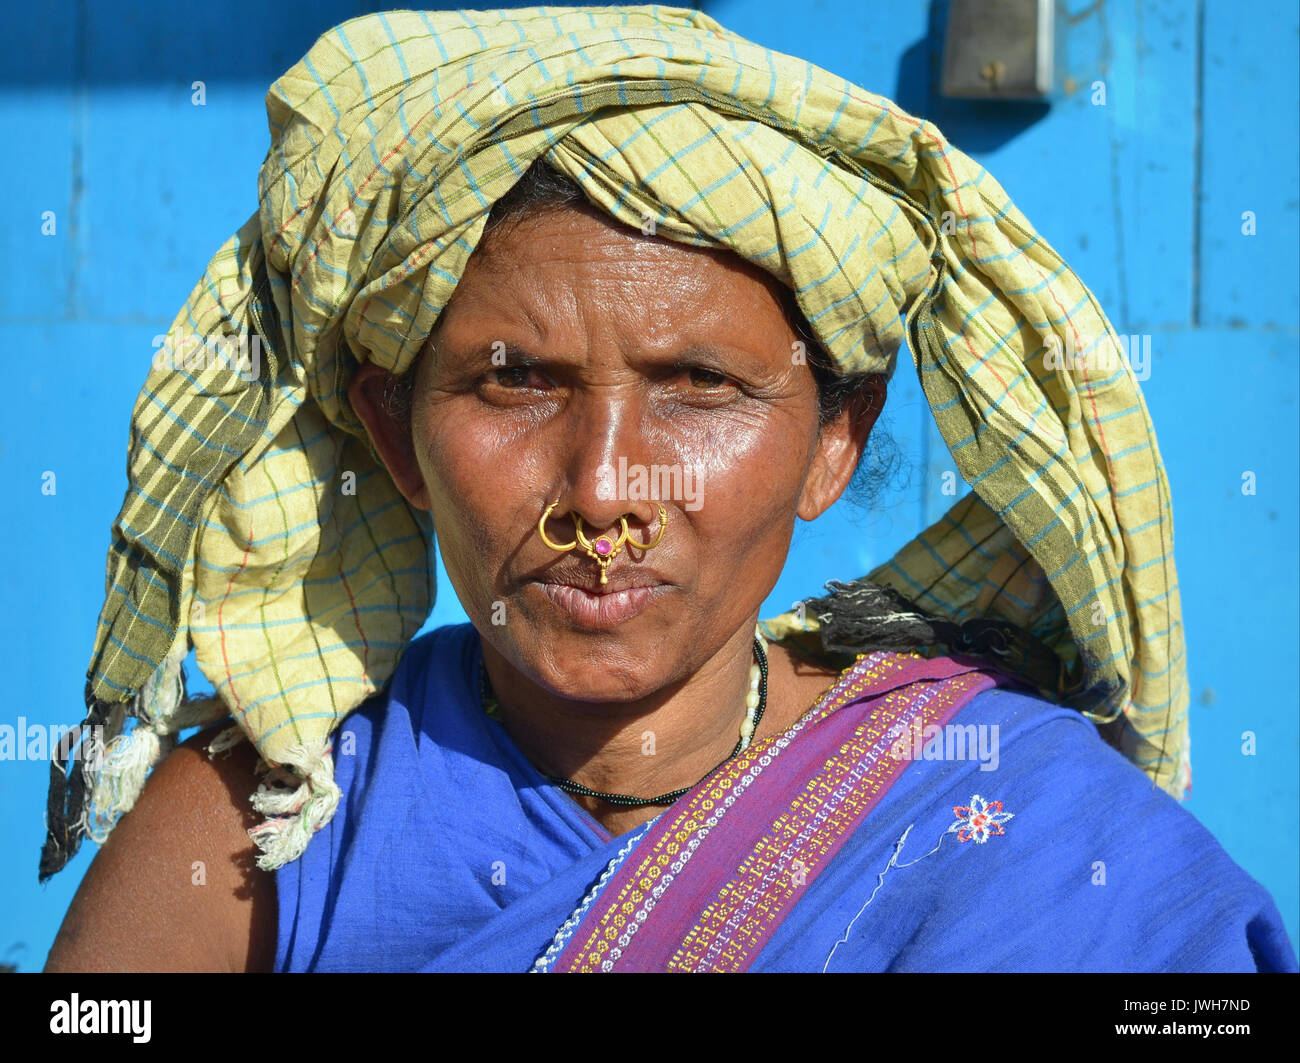 Closeup street portrait (outdoor headshot, full-face view) of a mature Indian Adivasi market woman with two golden - Stock Image